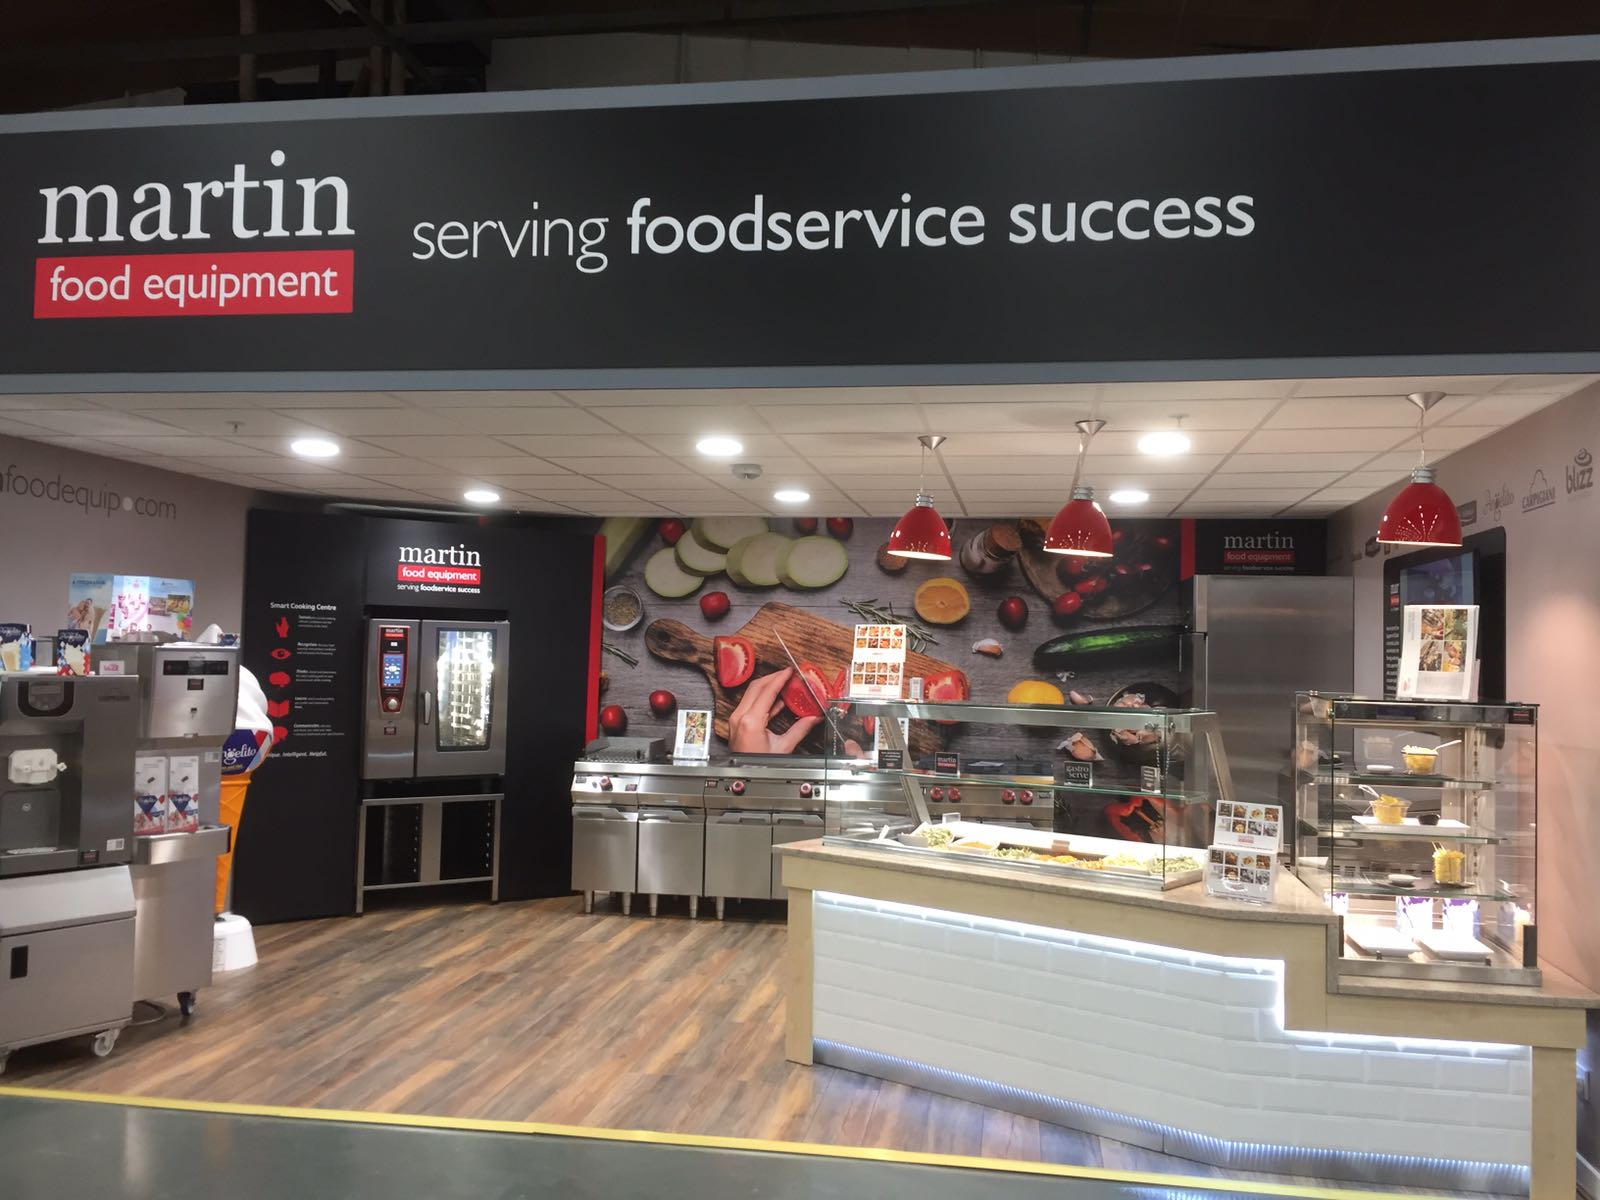 Martin Food Equipment MFE-Musgrave-Marketplace Martin Food Equipment/Musgrave MarketPlace Partnership News